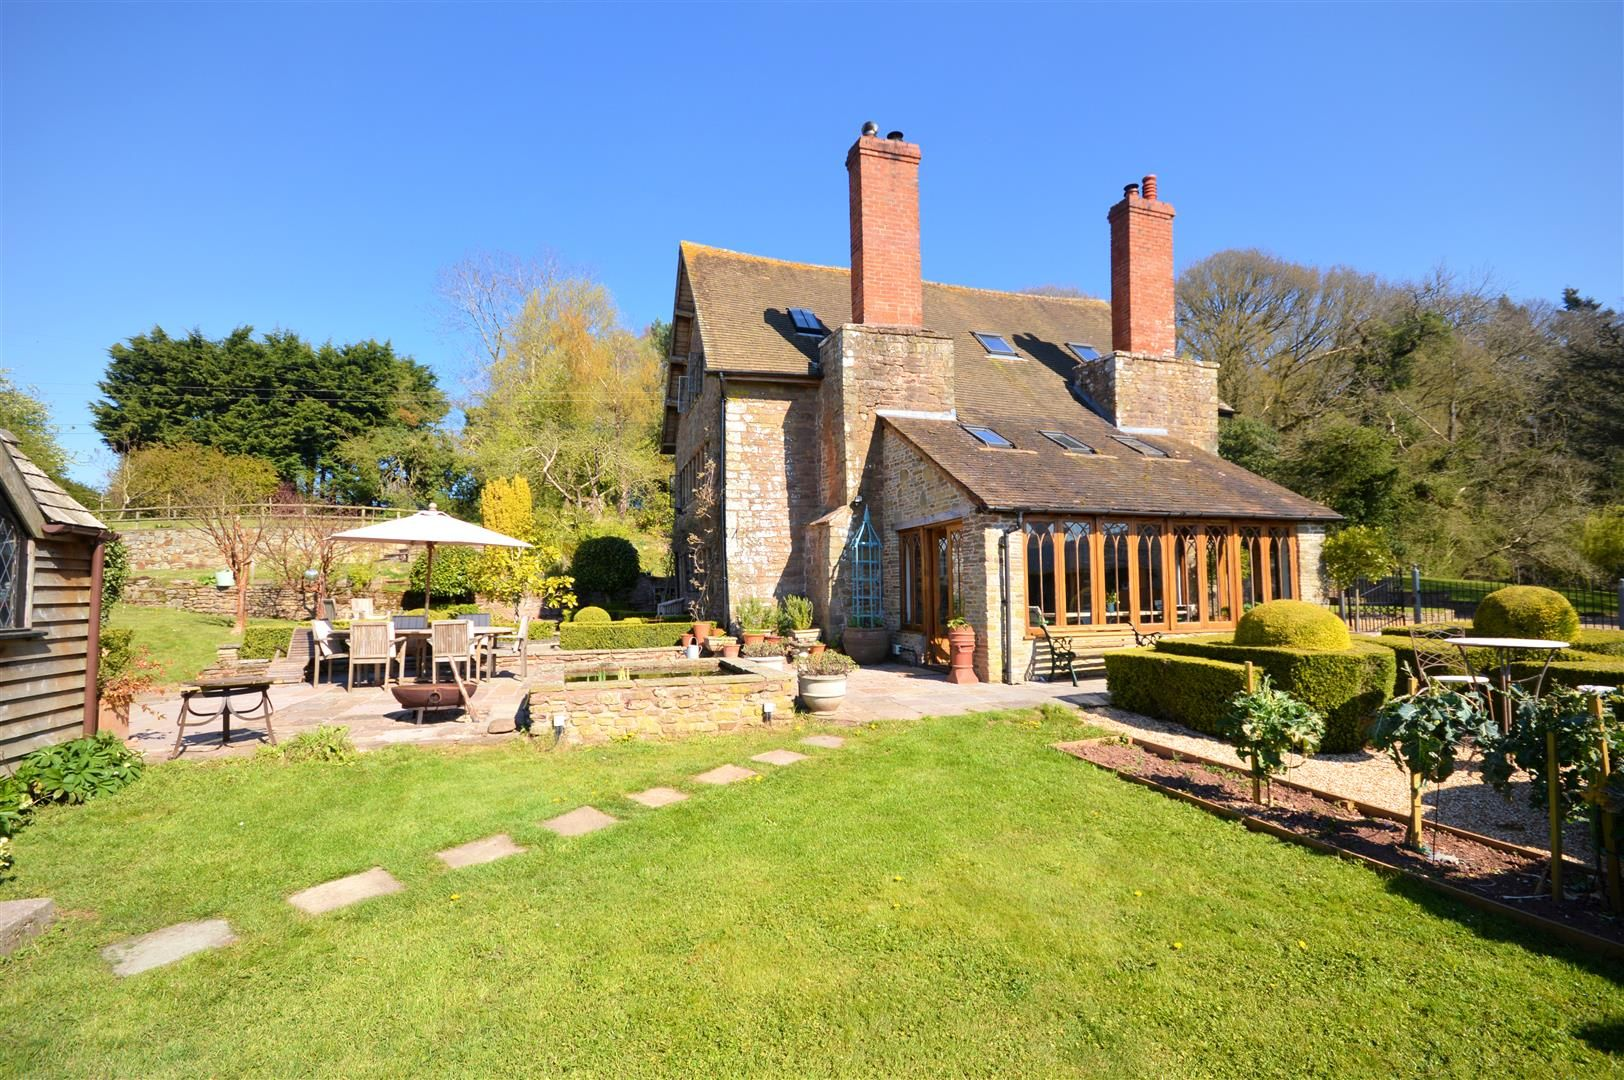 6 bed detached for sale in Wormsley, HR4